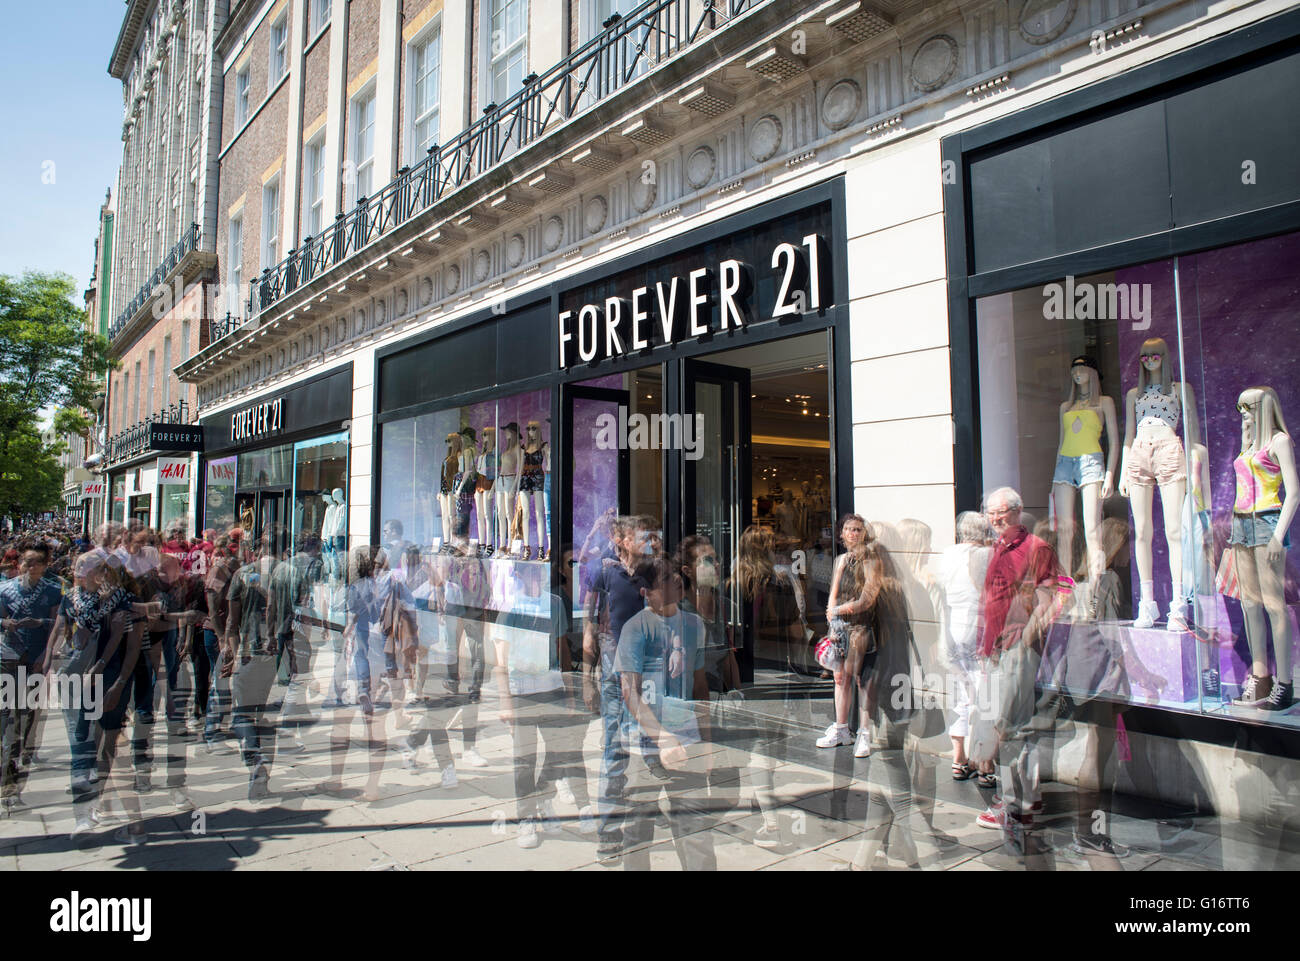 Blurred shoppers in London's Oxford Street by the Forever 21 store - Stock Image